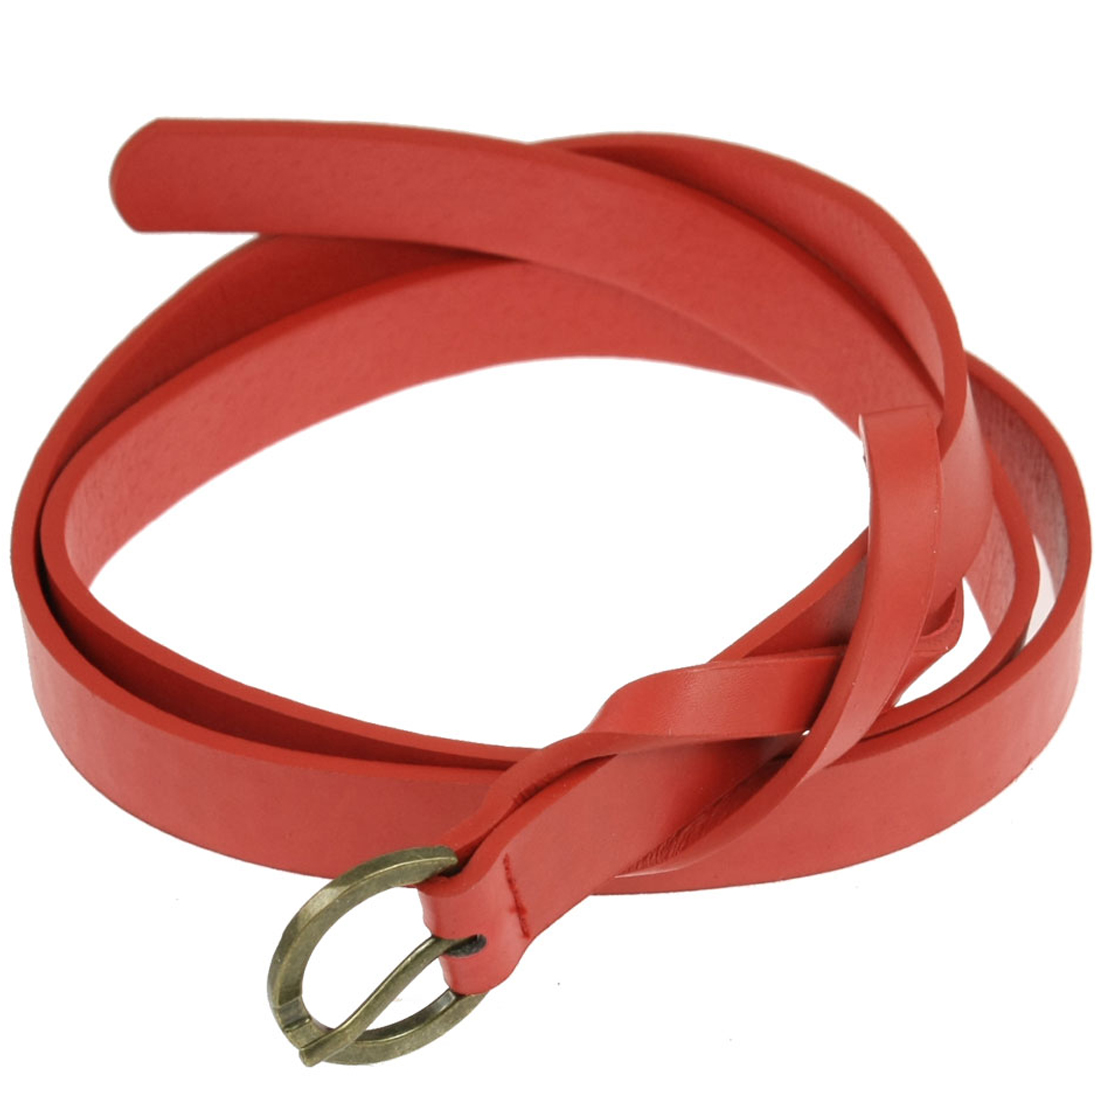 Woman Red Faux Leather Single Pin Buckle Adjustable Skinny Waist Belt Gift